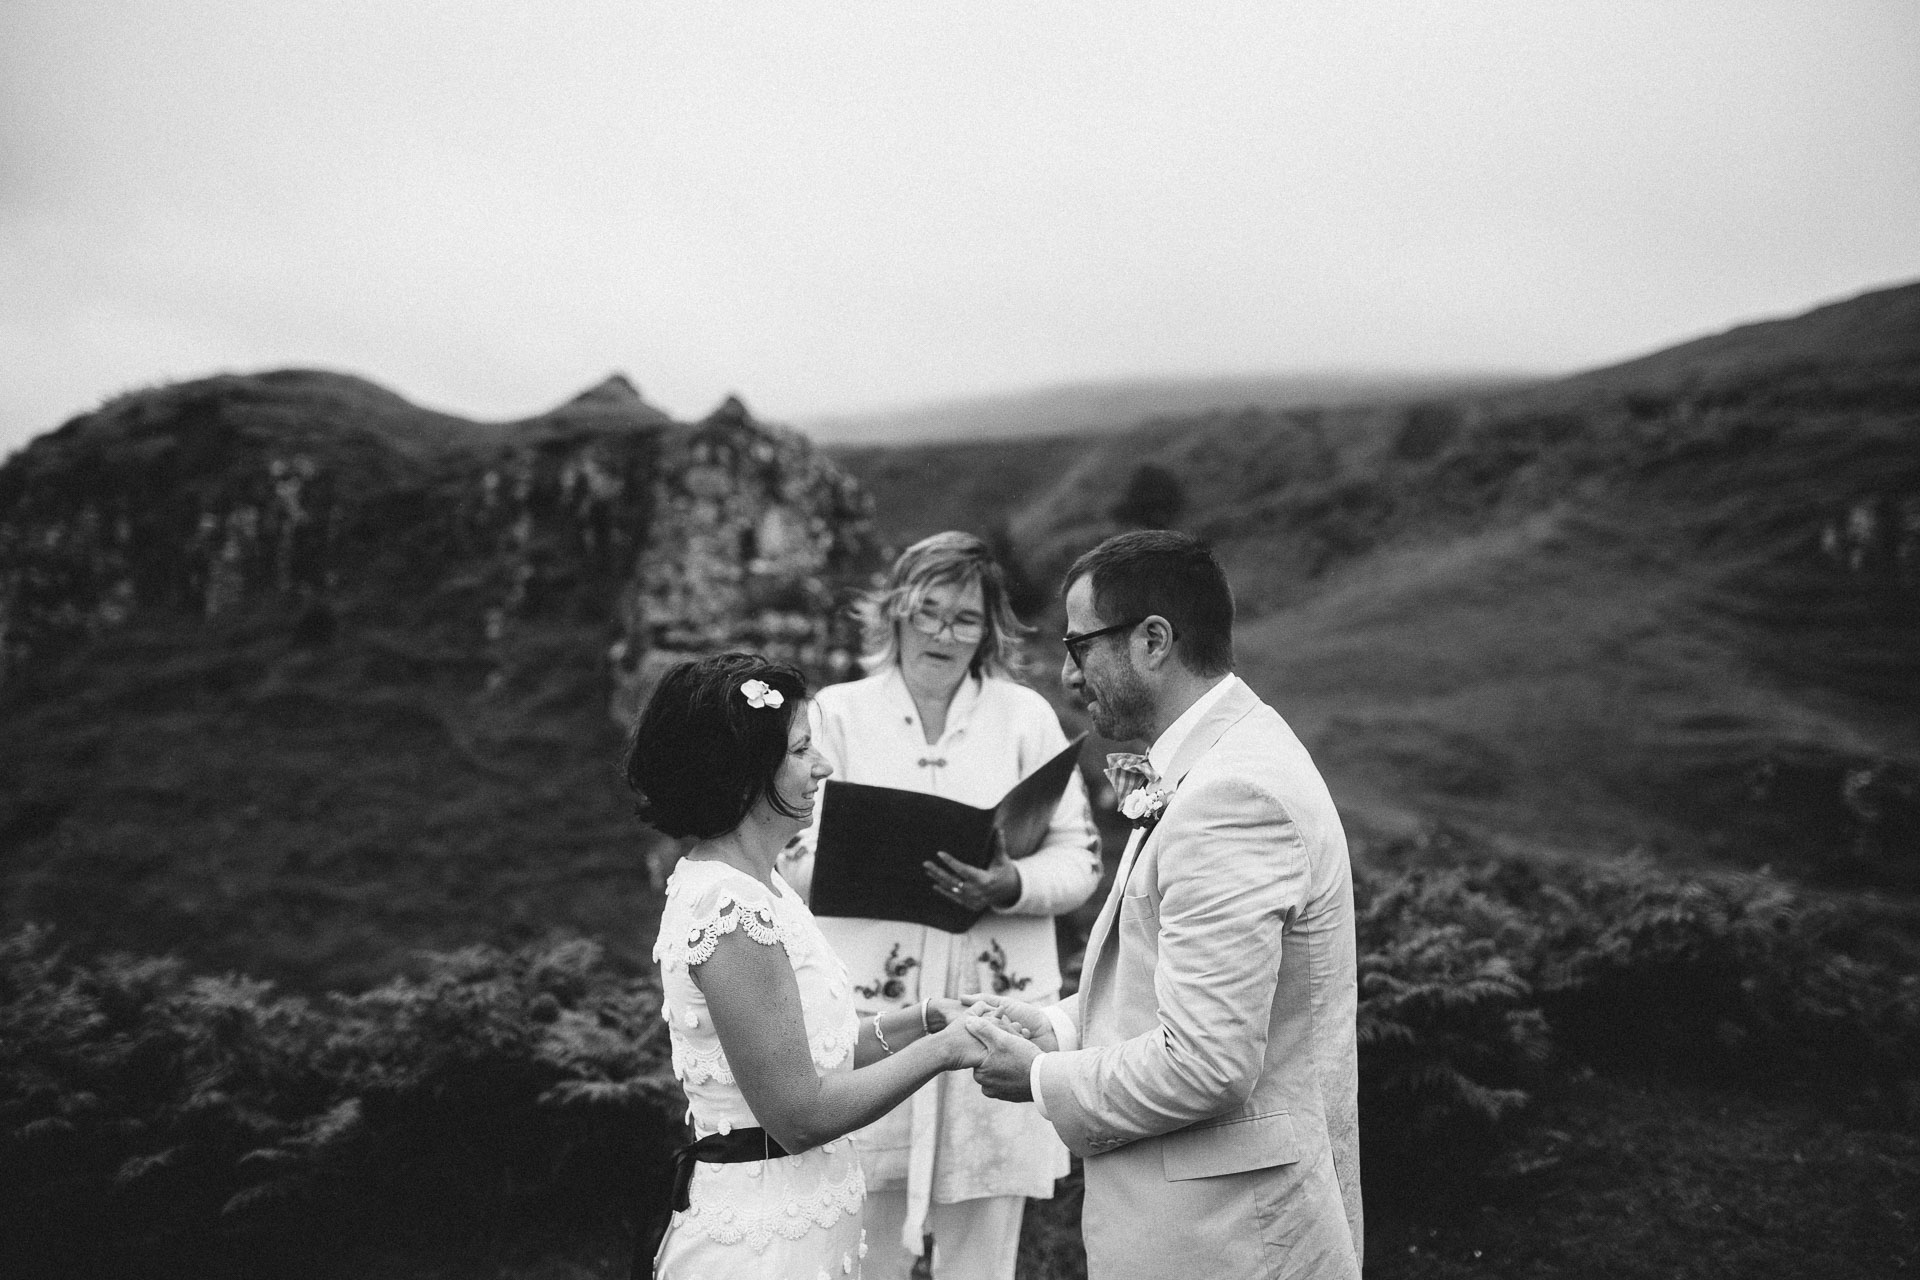 Megan_Matt_Elopement_IntimateWedding_Scotland_IsleOfSkye_JeanLaurentGaudy_075